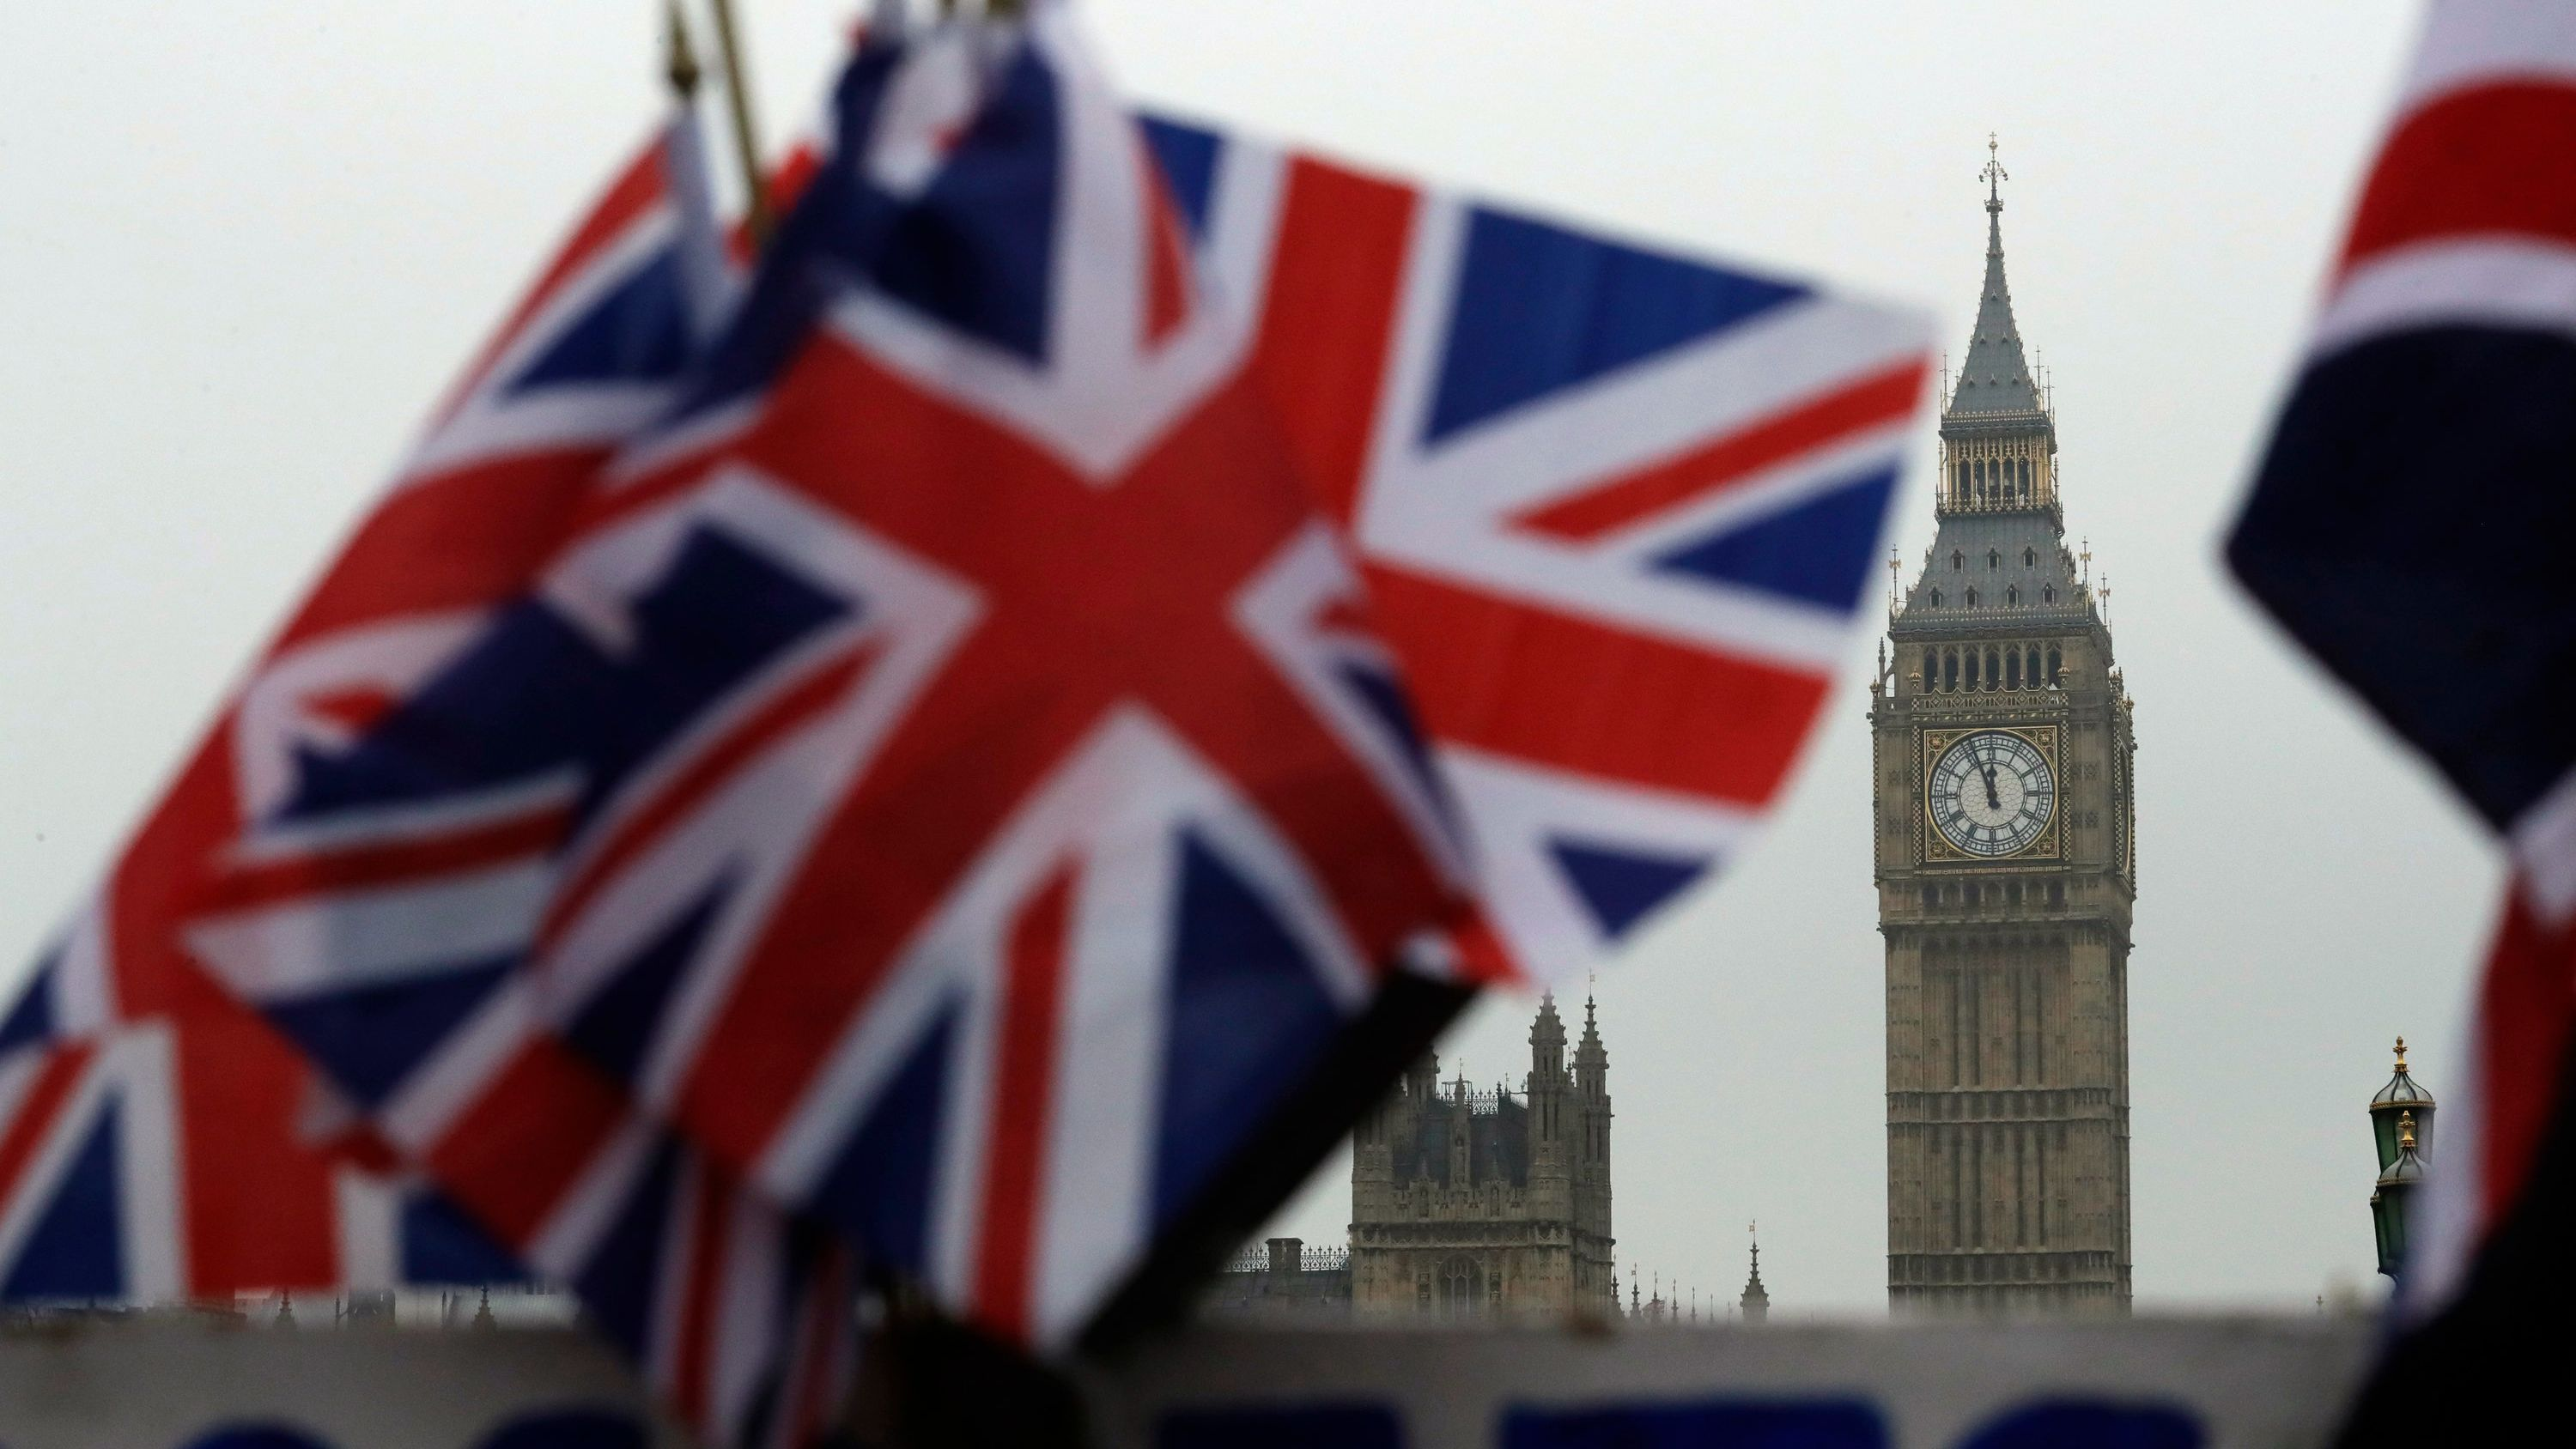 Britische Flaggen und Big Ben Uhrturm in London